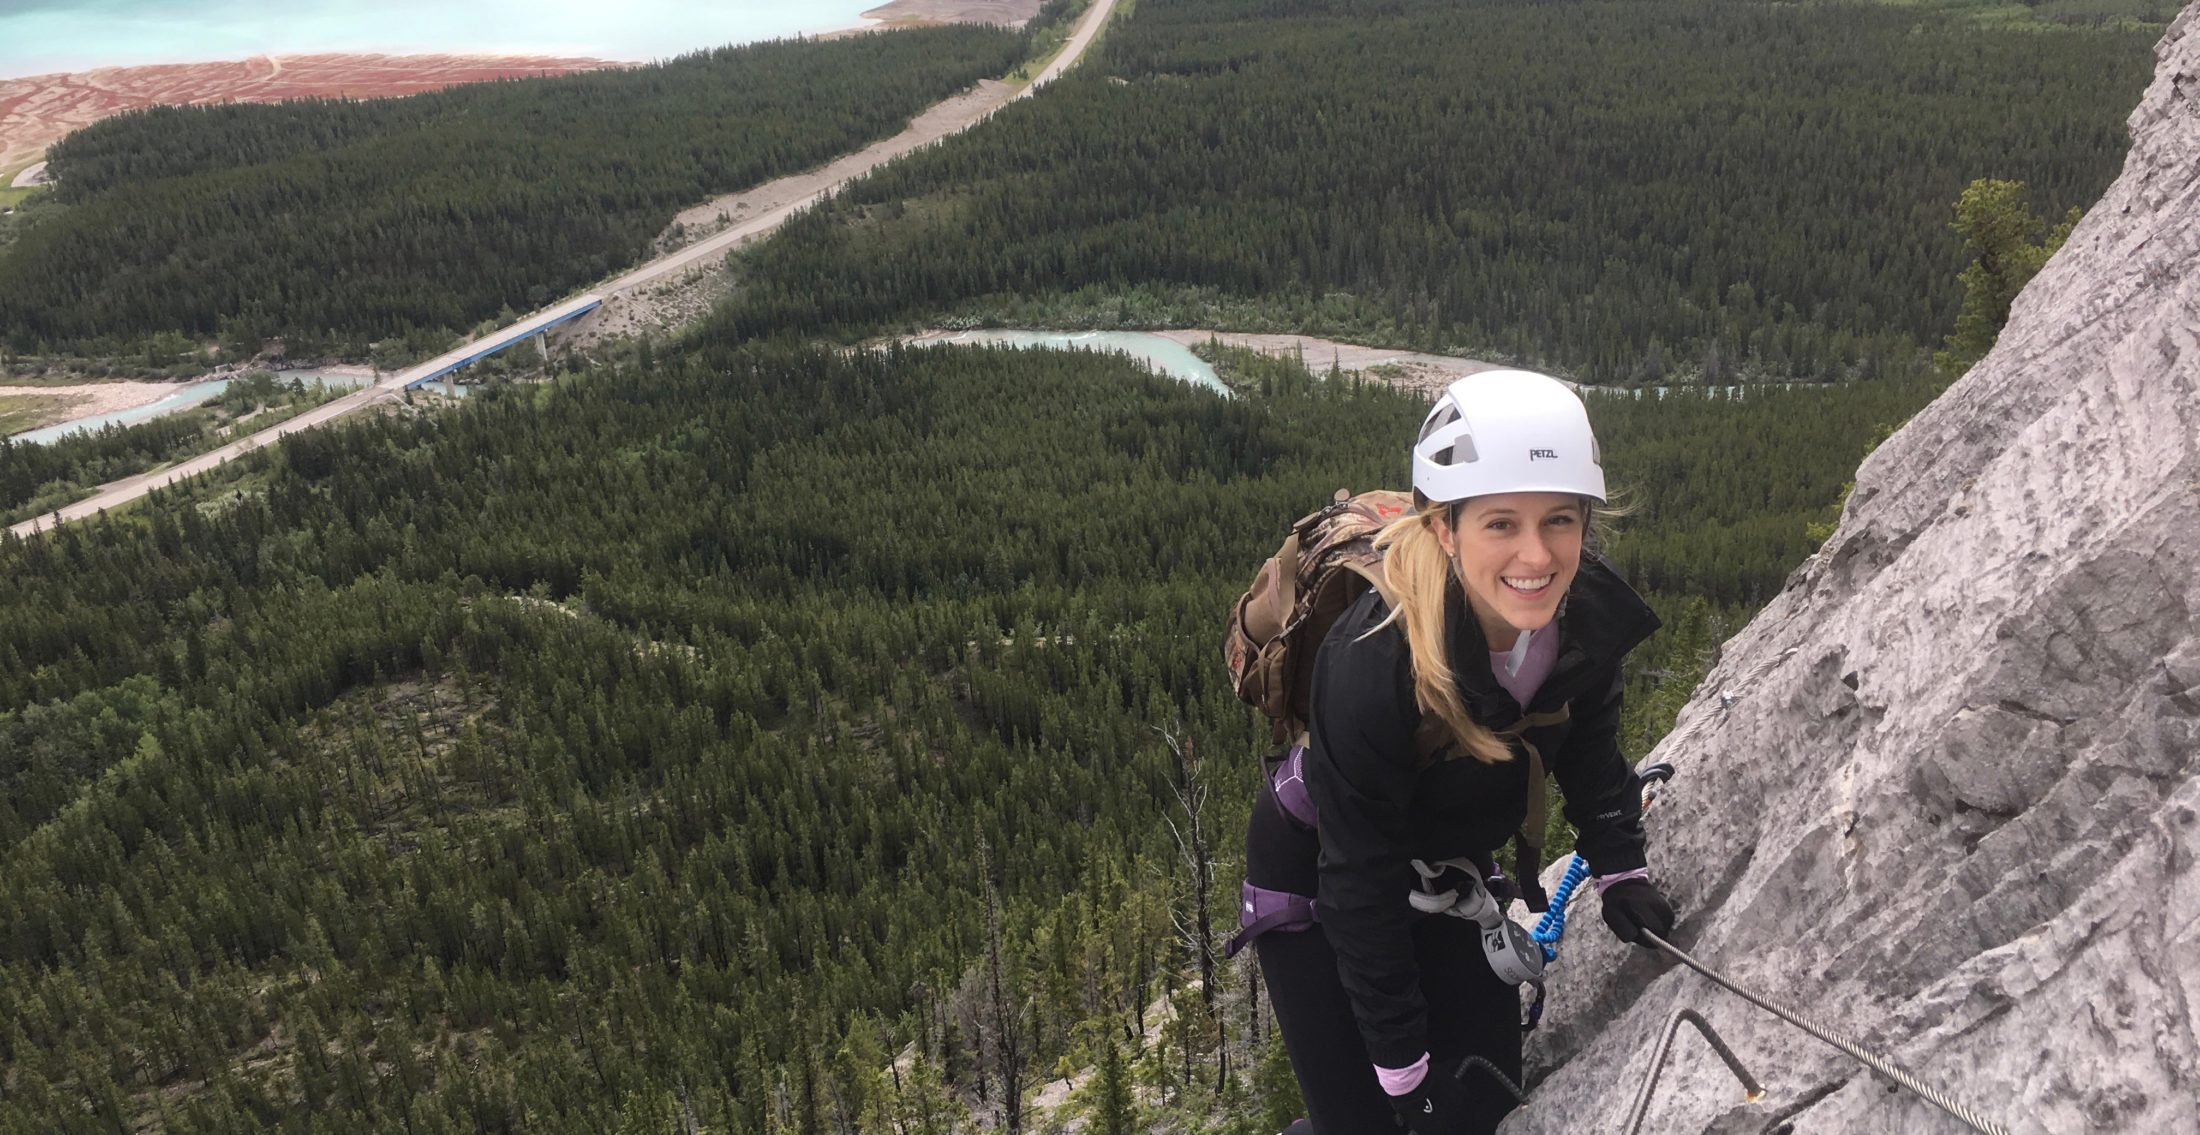 A girl wearing a helmet climbing a via ferrata with a forest and lake below